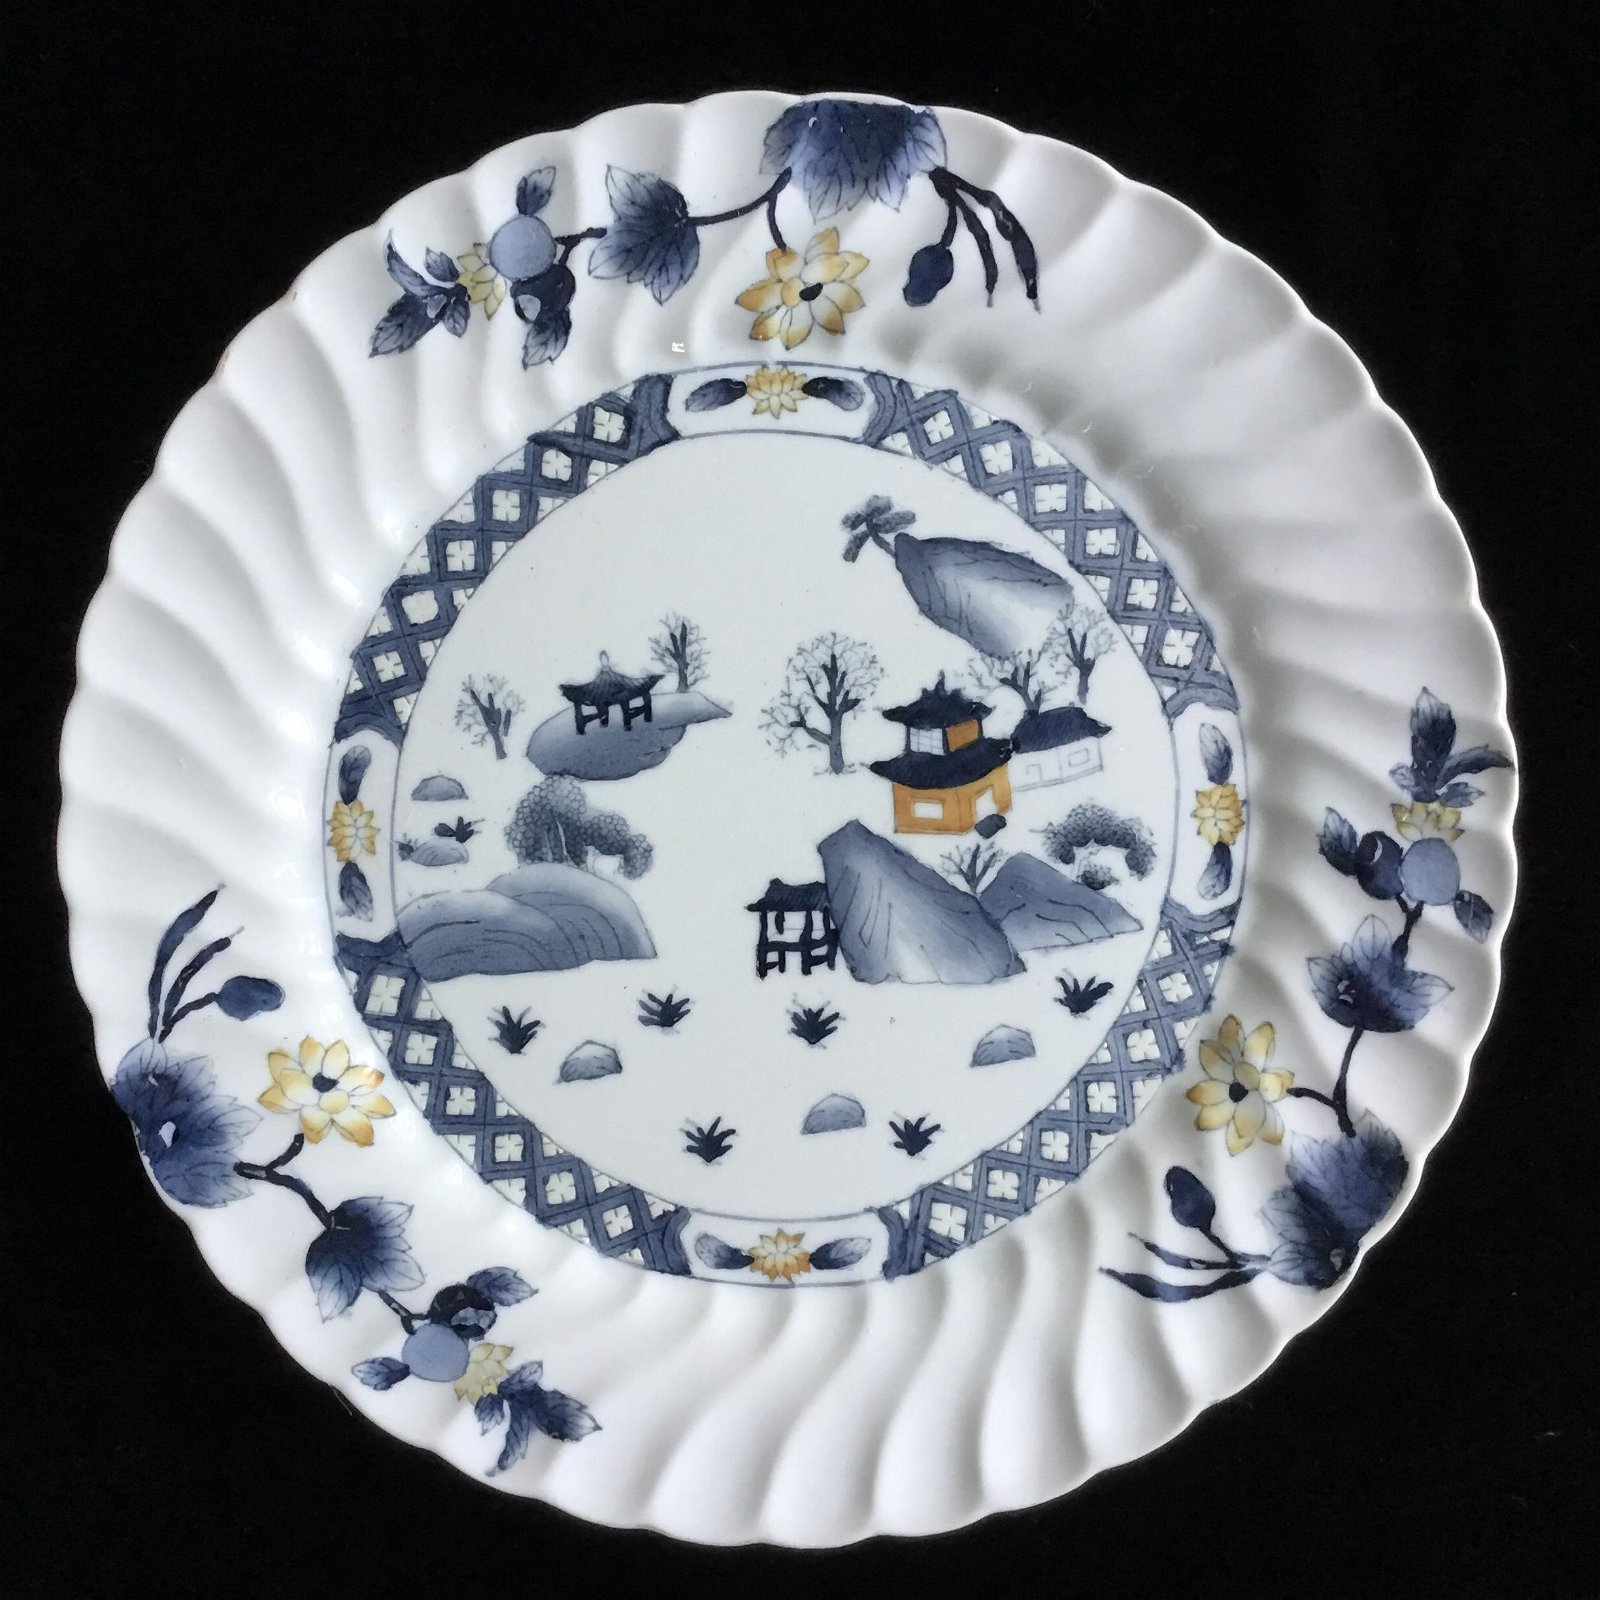 A CHINESE BLUE AND WHITE CERAMIC PLATE